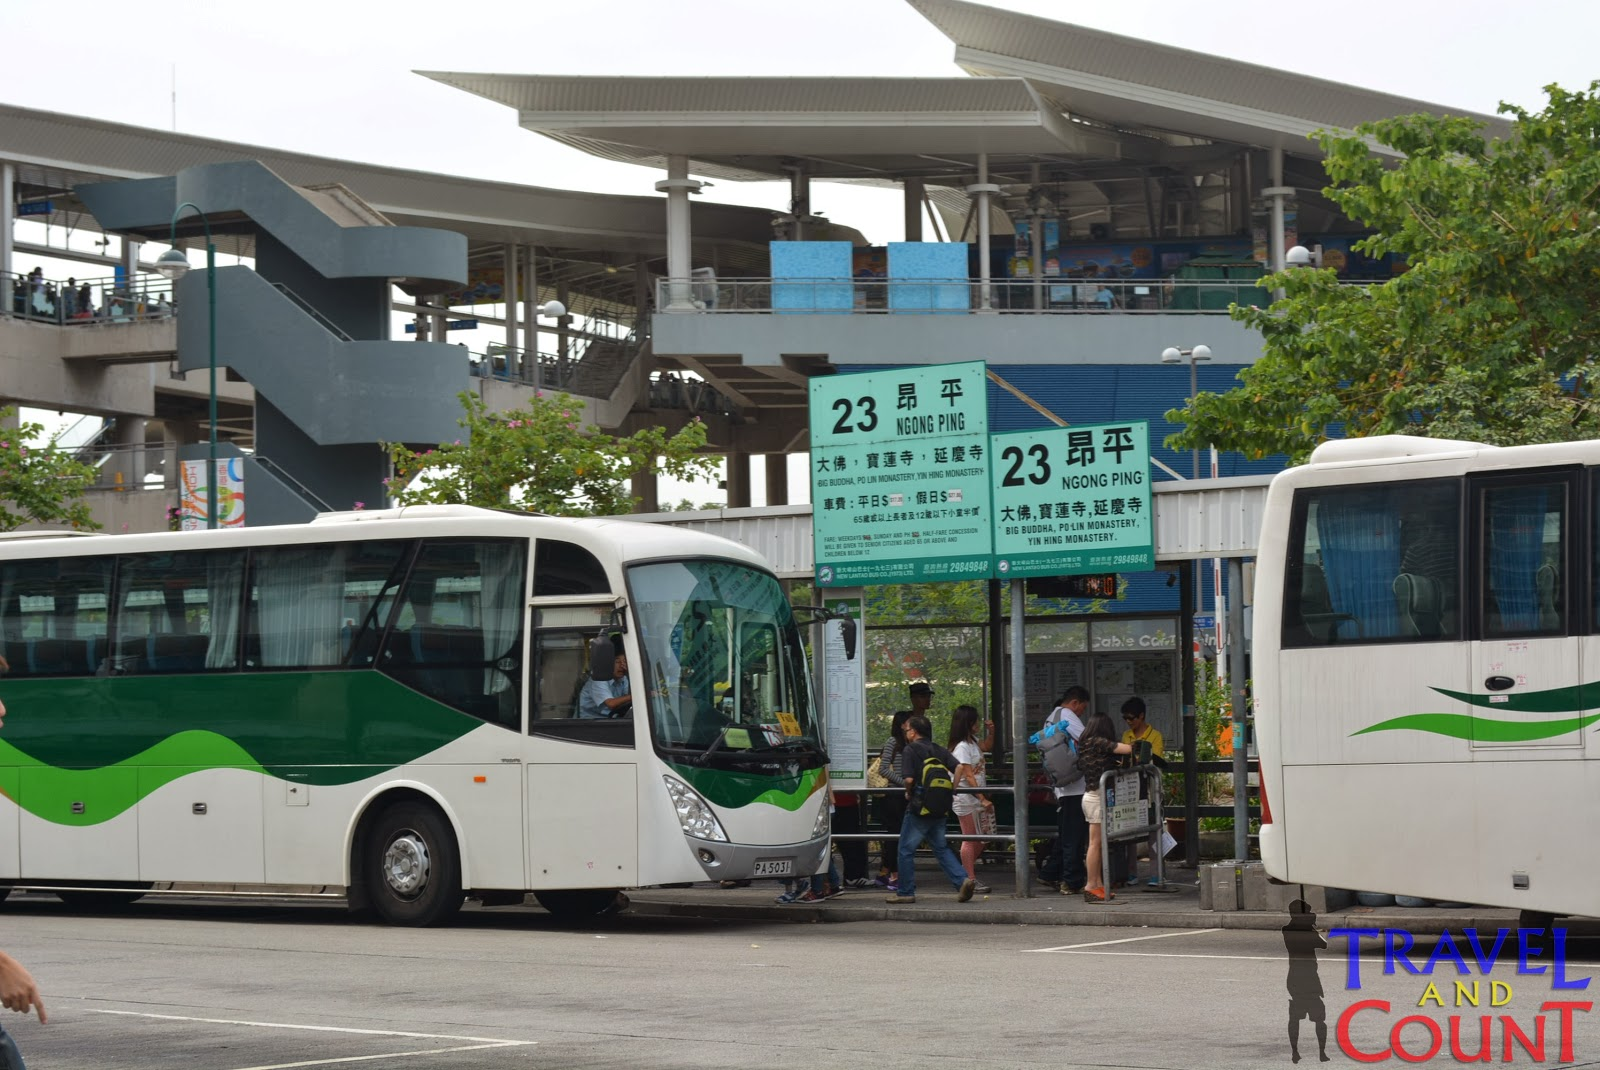 Bus 23 to Ngong Ping Lantau